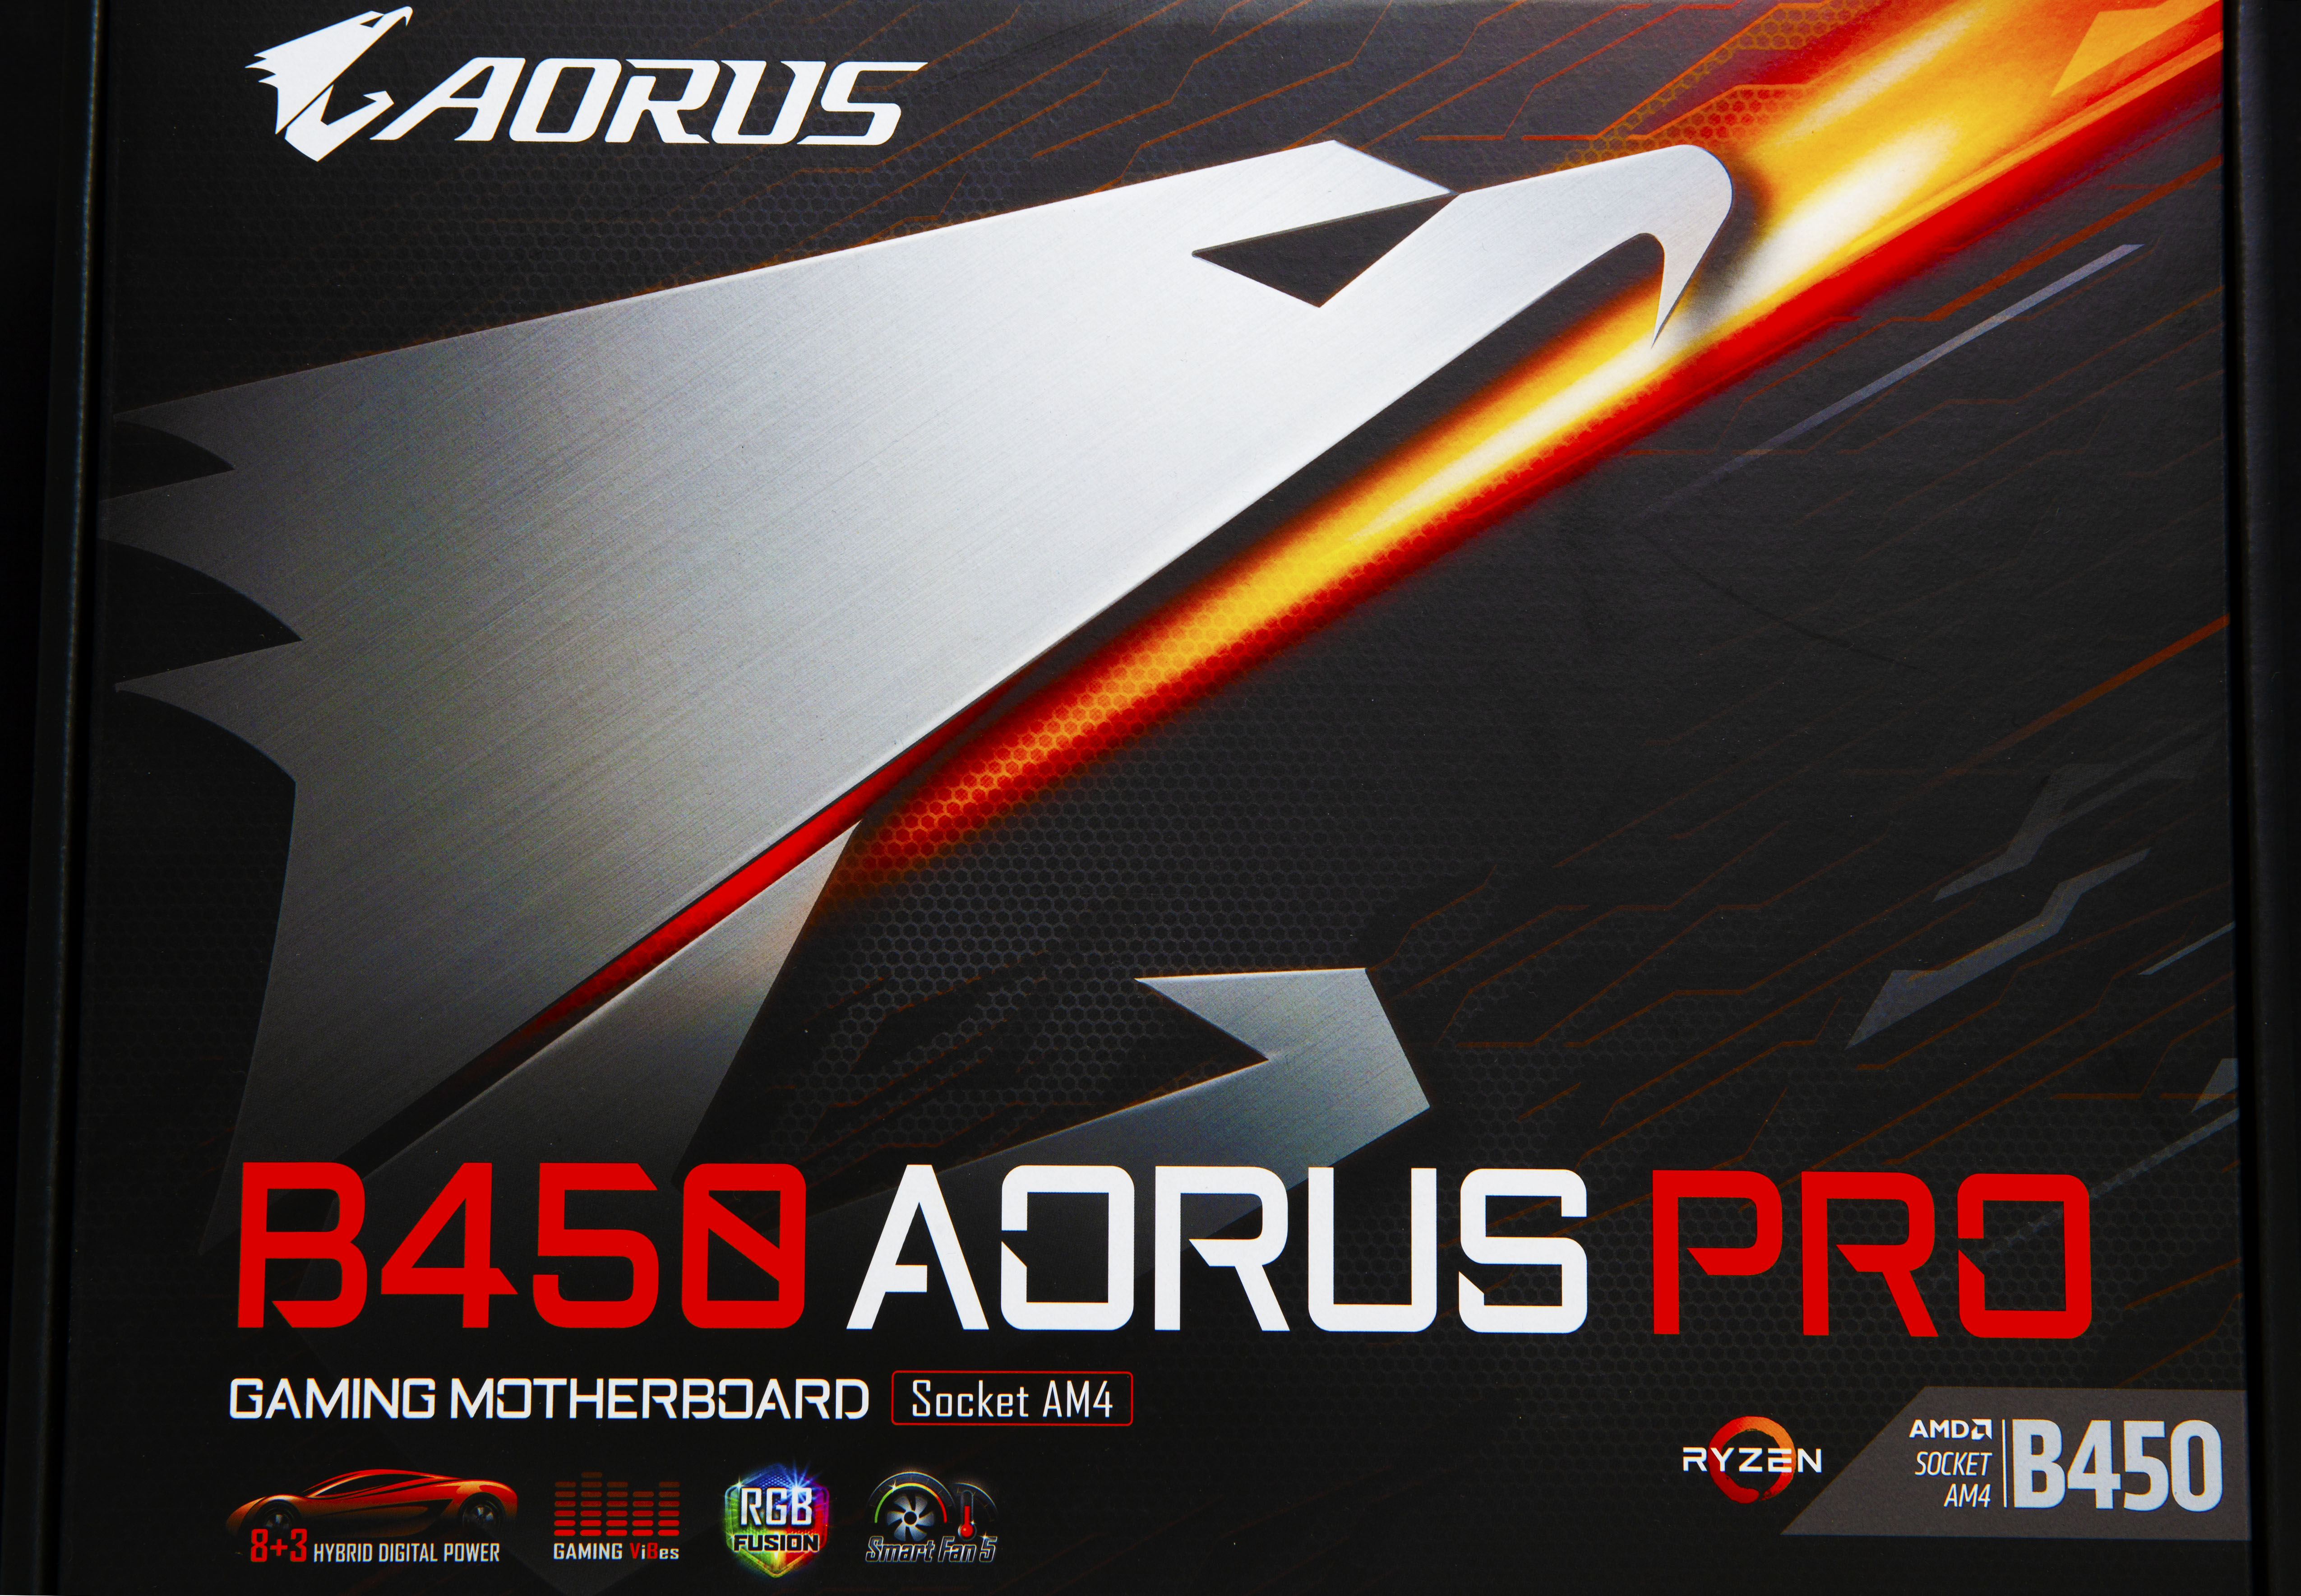 AMD's latest B450 Chipset boosts Advanced Features for Budget